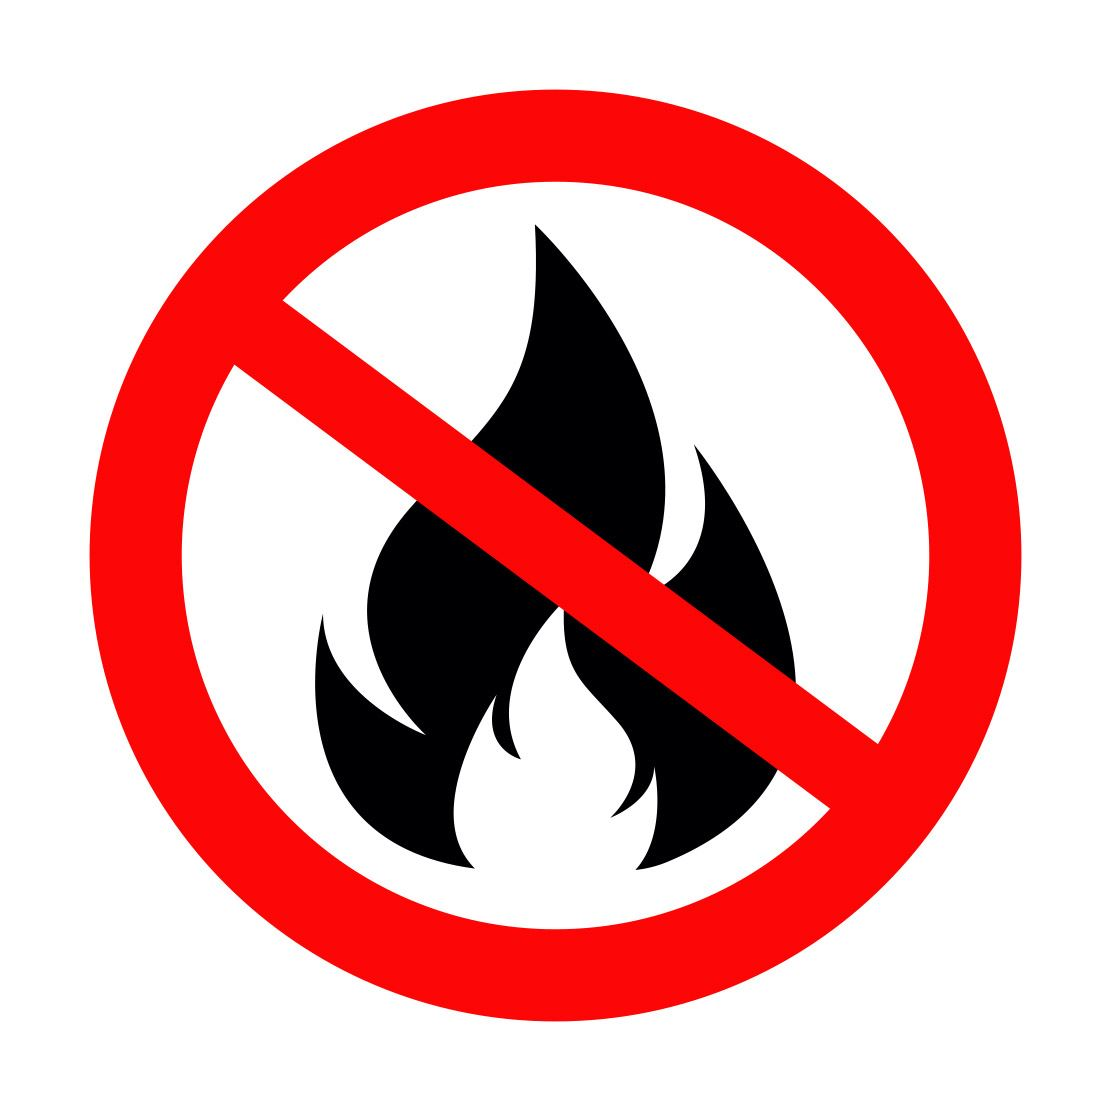 No Burn Image